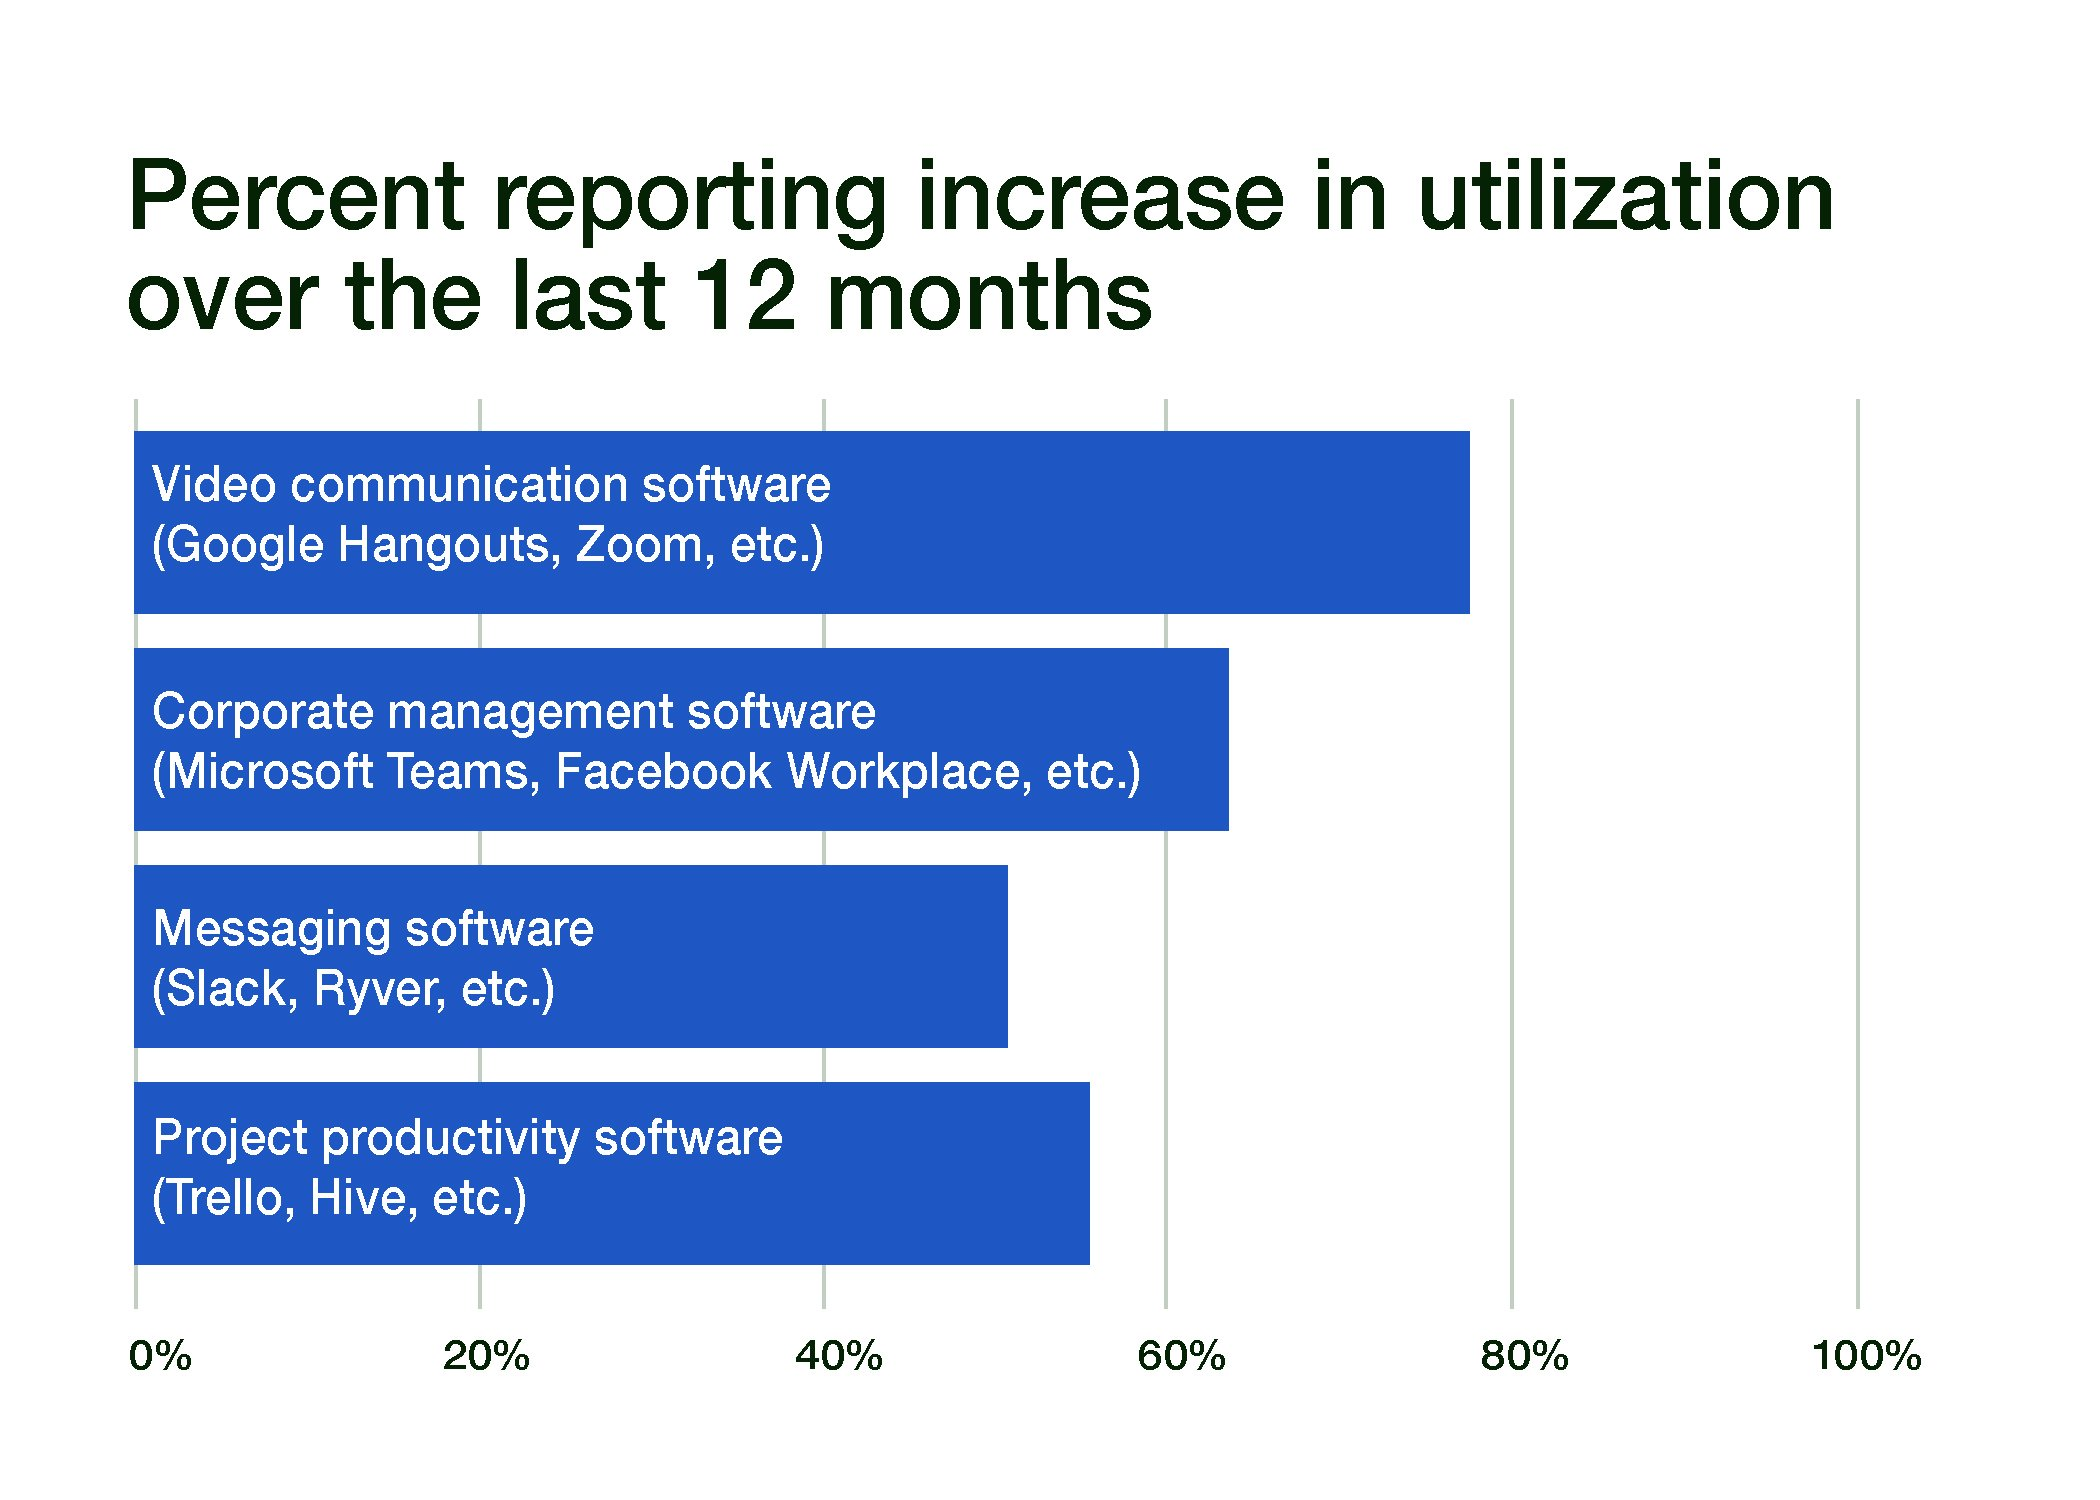 Percent reporting increase in utilization over the last 12 months